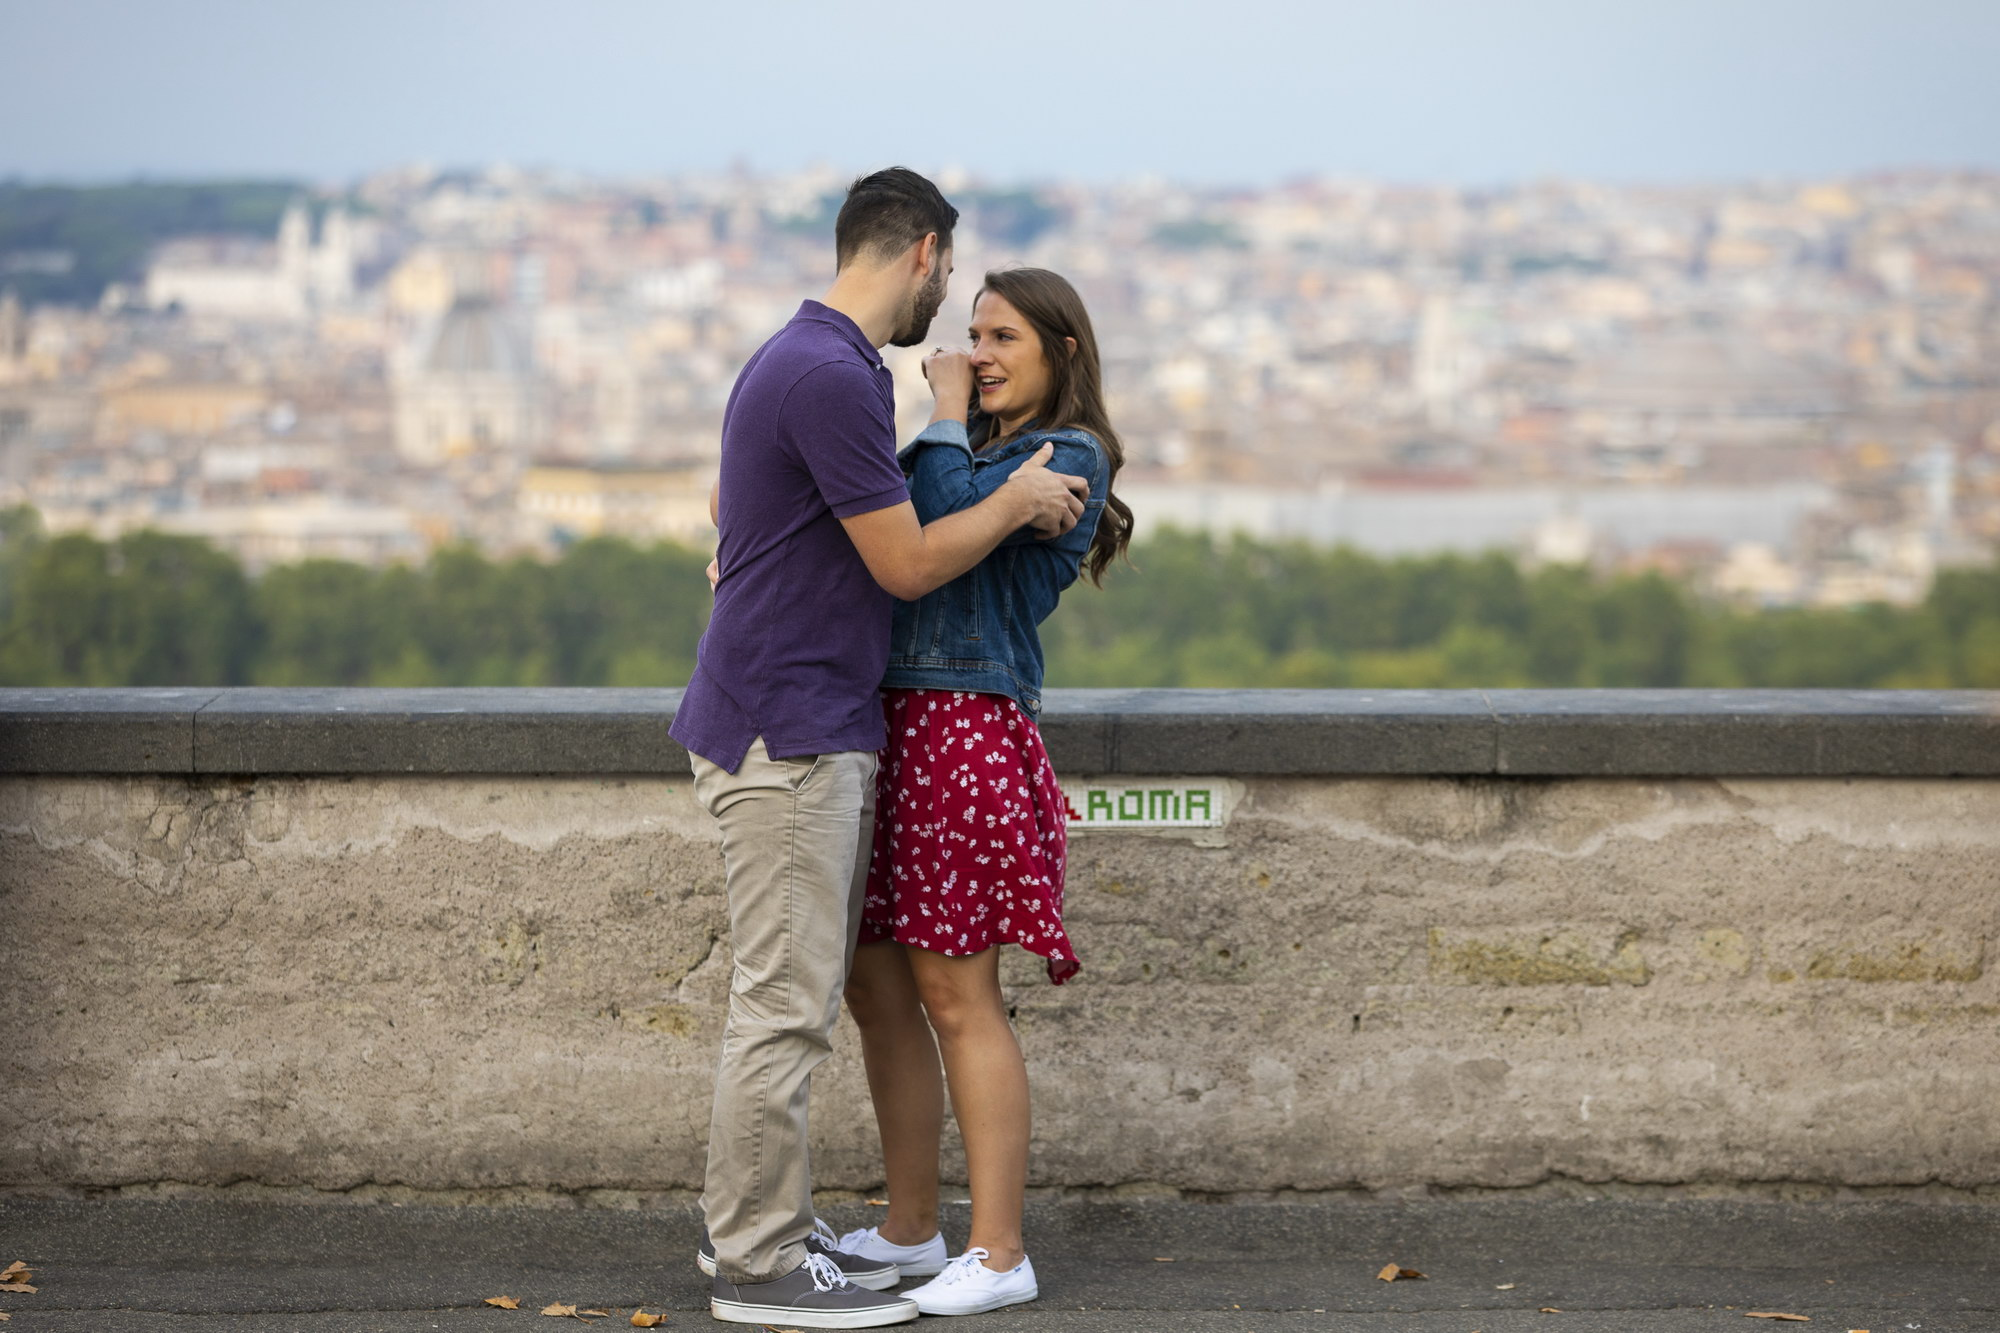 Roman Wedding Proposal With a View Andrea Matone04